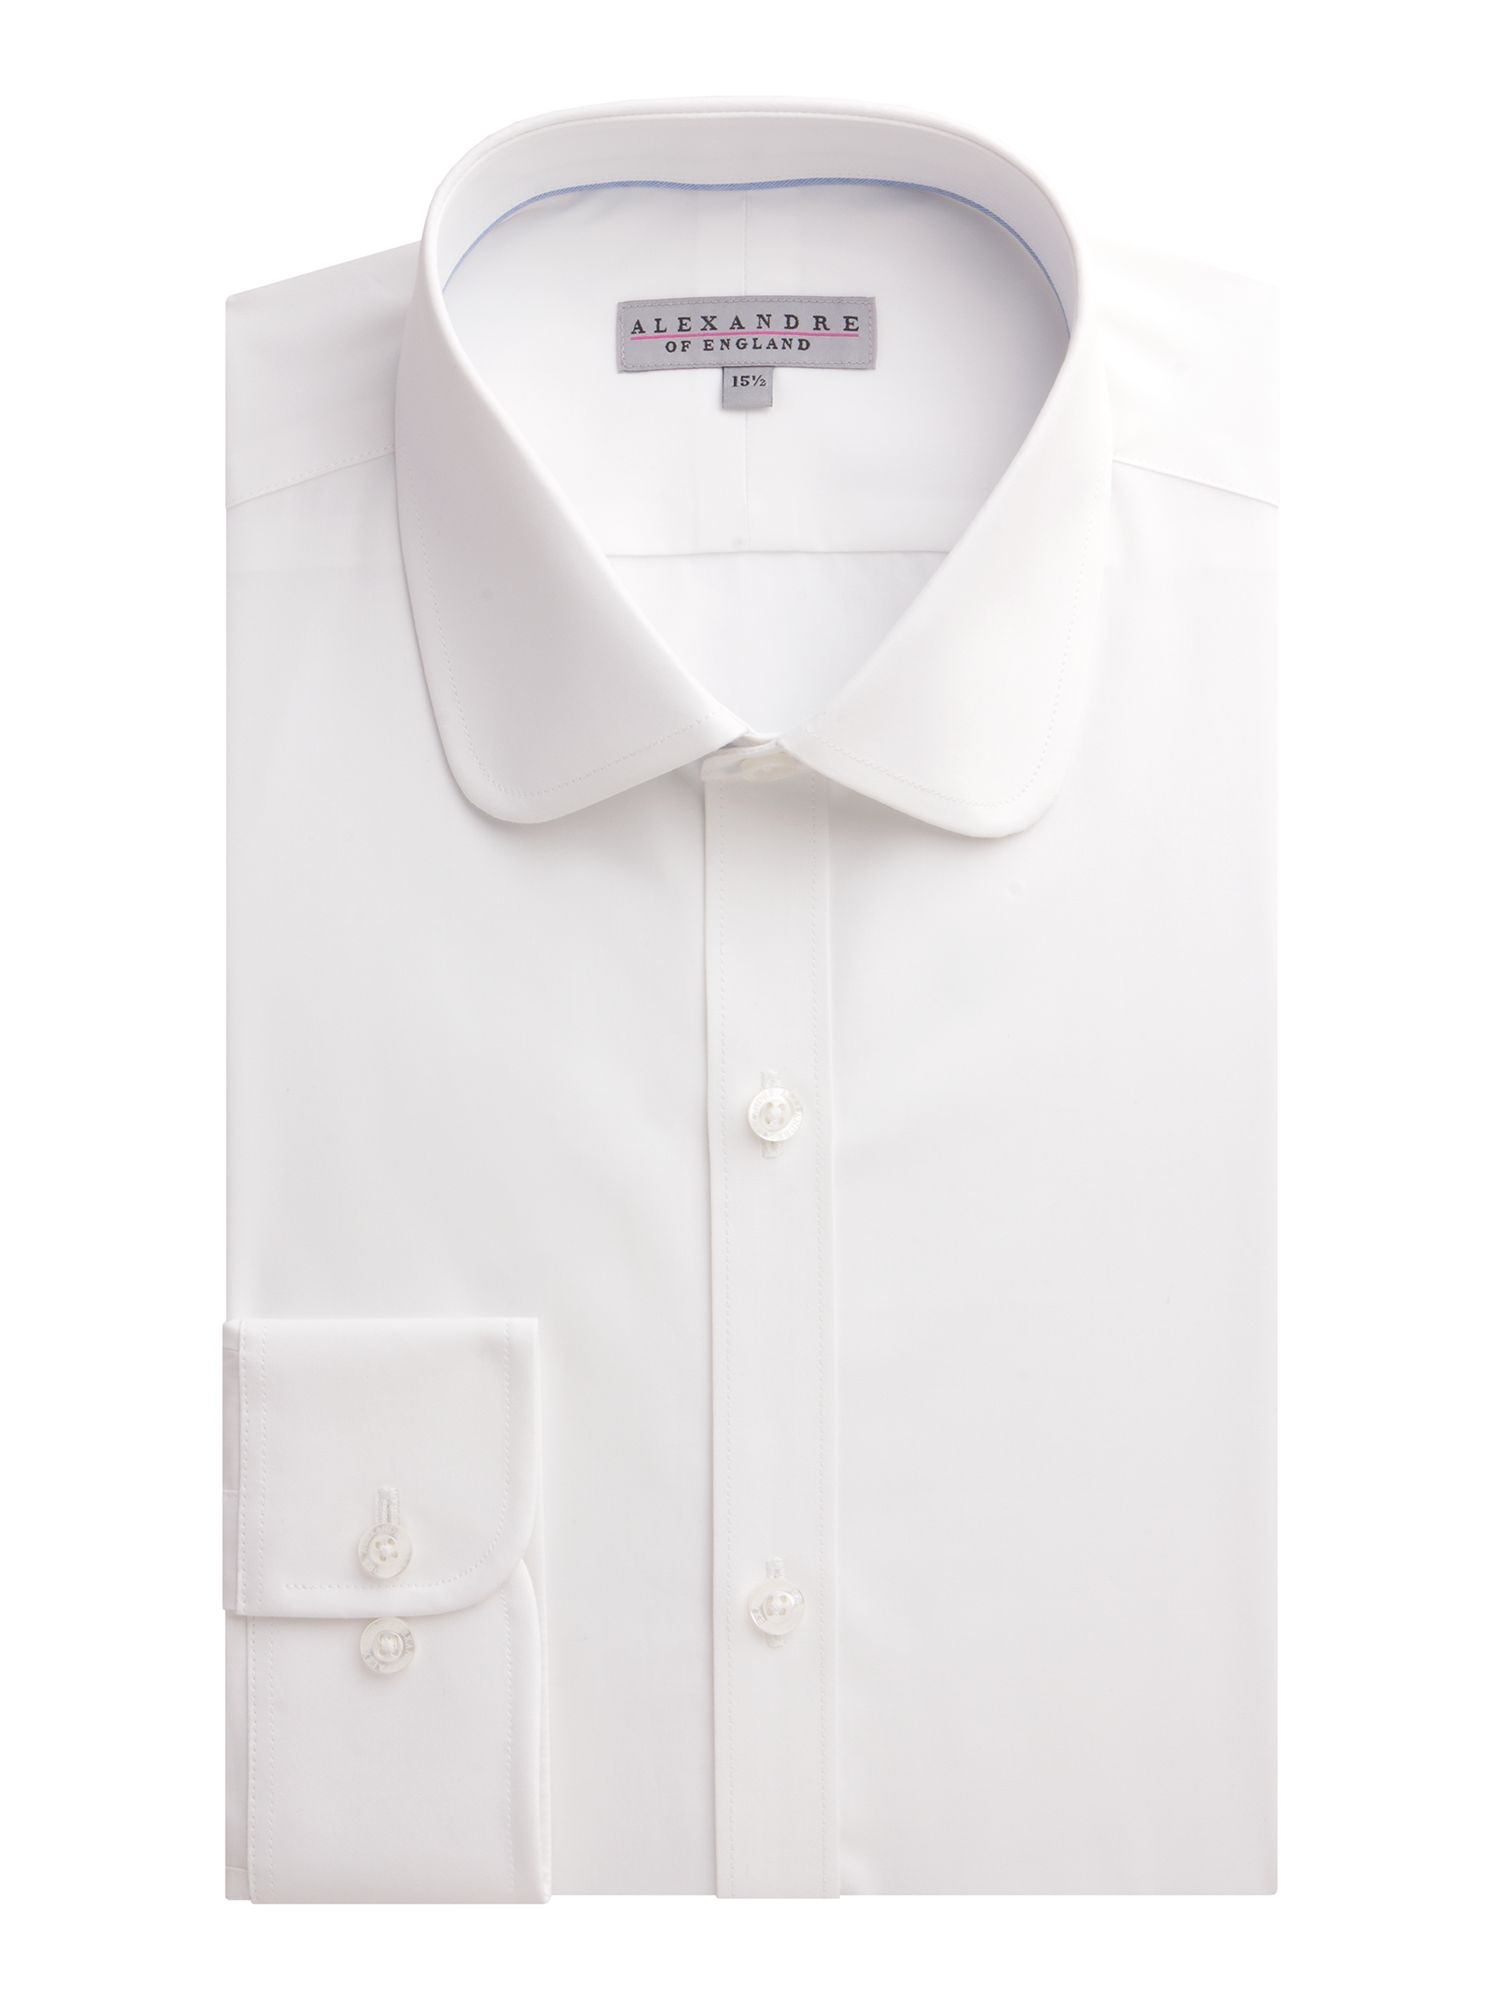 Mens Alexandre of England Poplin Plain Slim Fit Long Sleeve Formal Shirt $48.30 AT vintagedancer.com